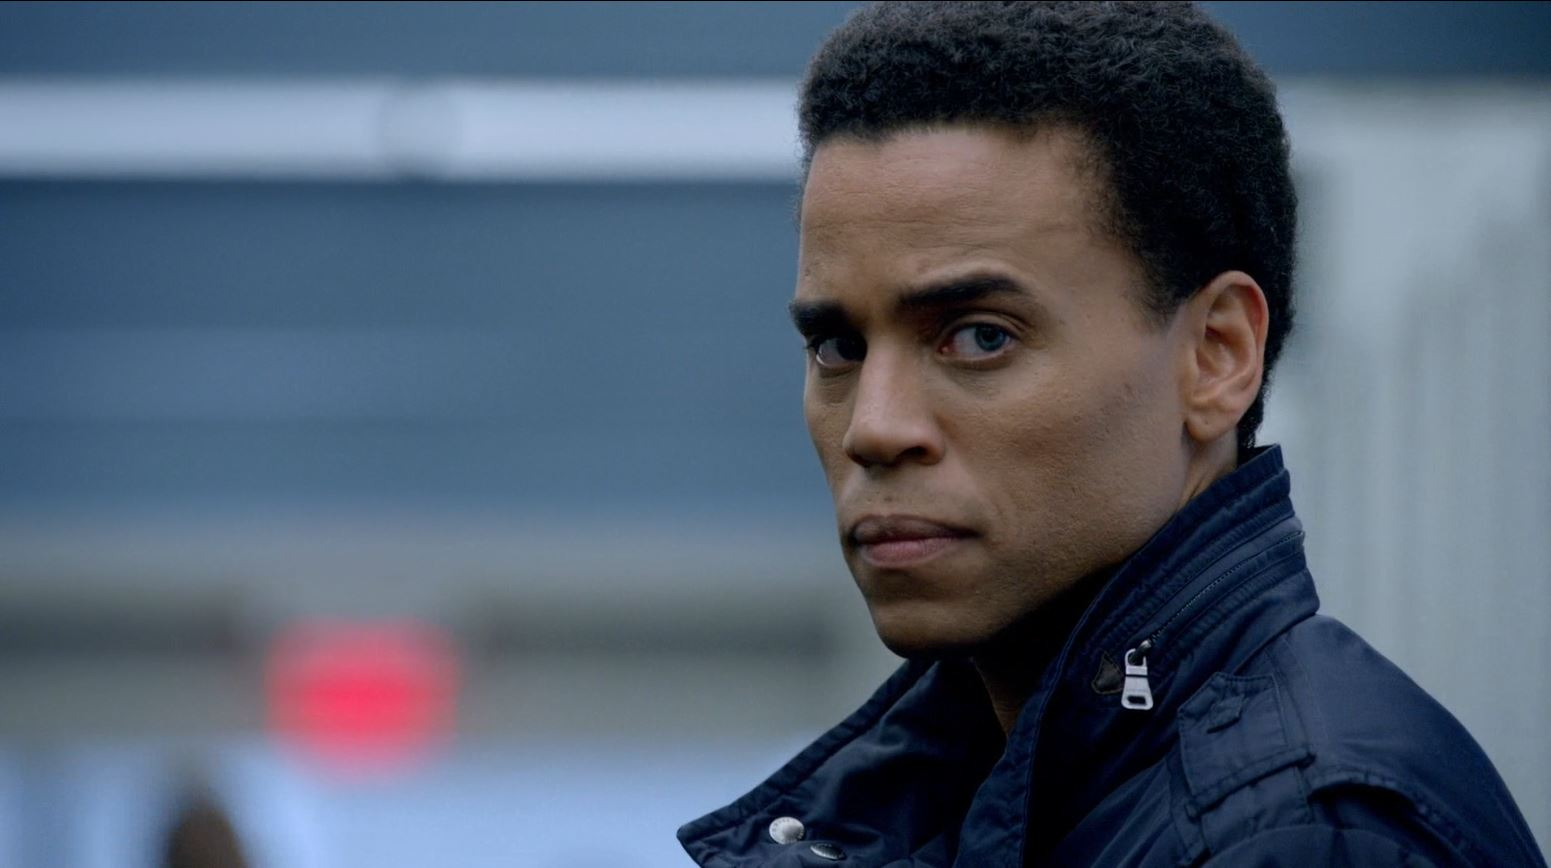 Almost Human - Perception - Michael Ealy as Dorian